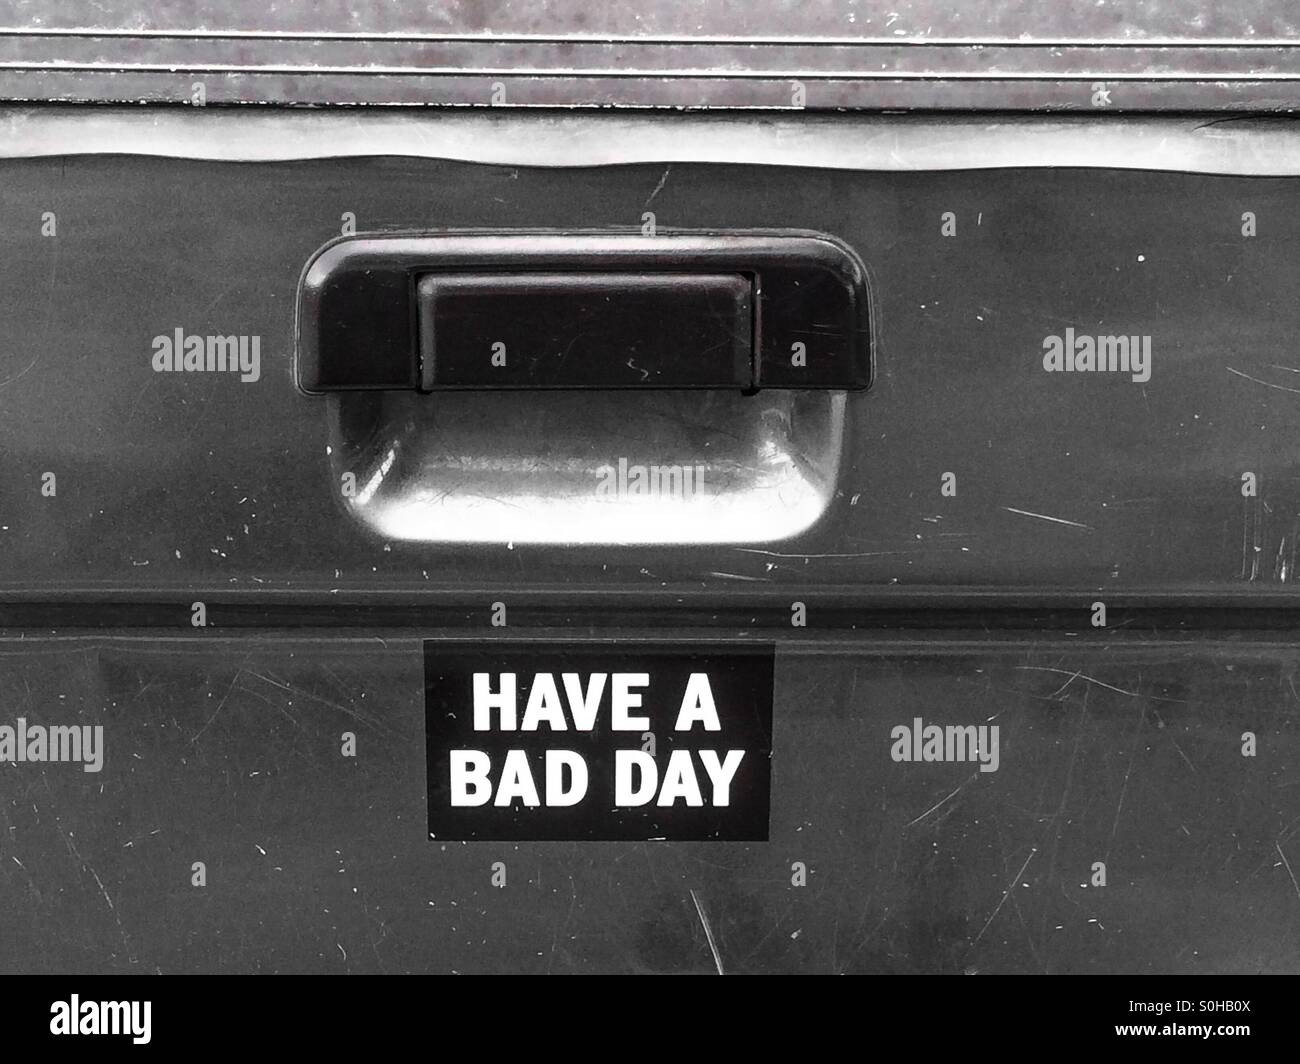 Bumper sticker on a car reads 'have a bad day' - Stock Image